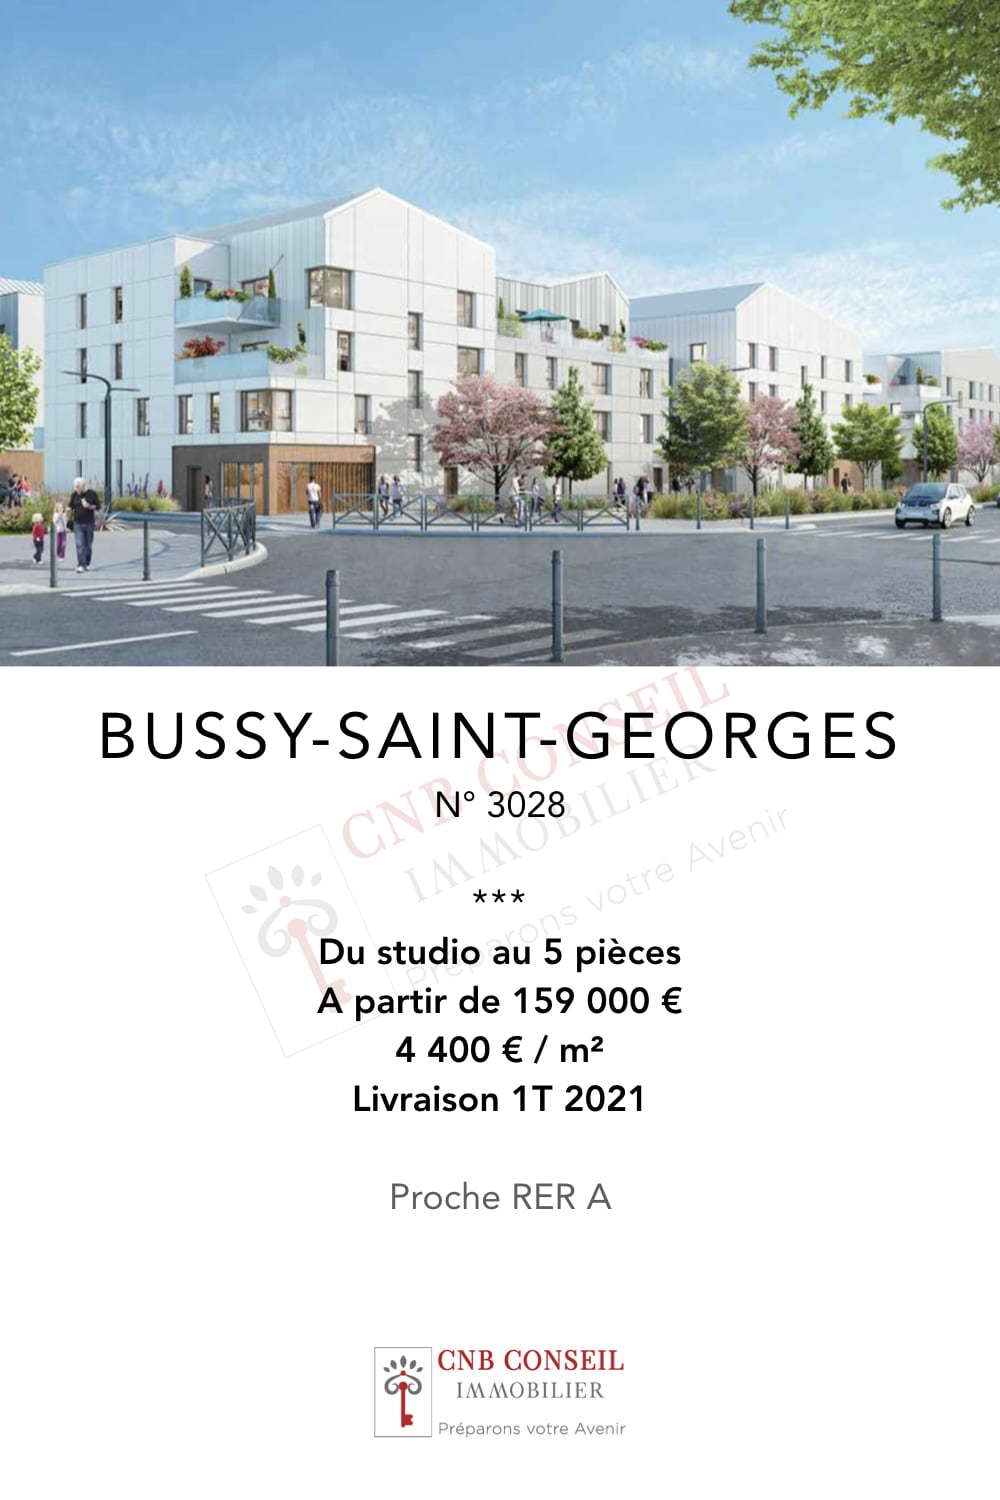 CNB-Conseil-Achat-Immobilier-Neuf-Acheter-Bussy-Saint-Georges